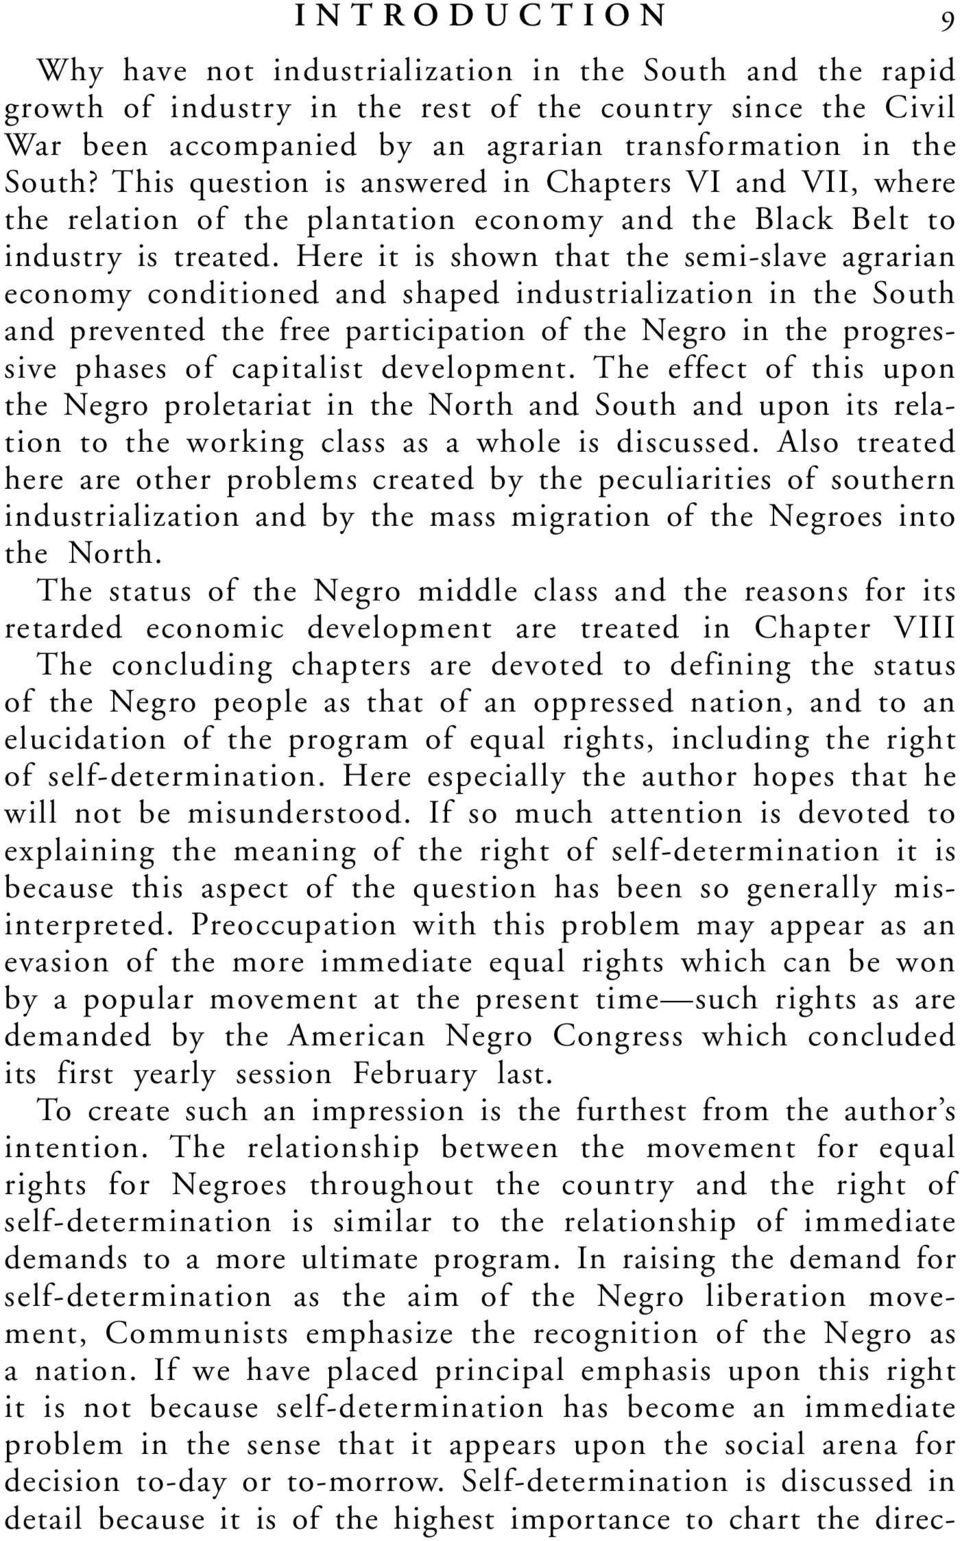 Here it is shown that the semi-slave agrarian economy conditioned and shaped industrialization in the South and prevented the free participation of the Negro in the progressive phases of capitalist